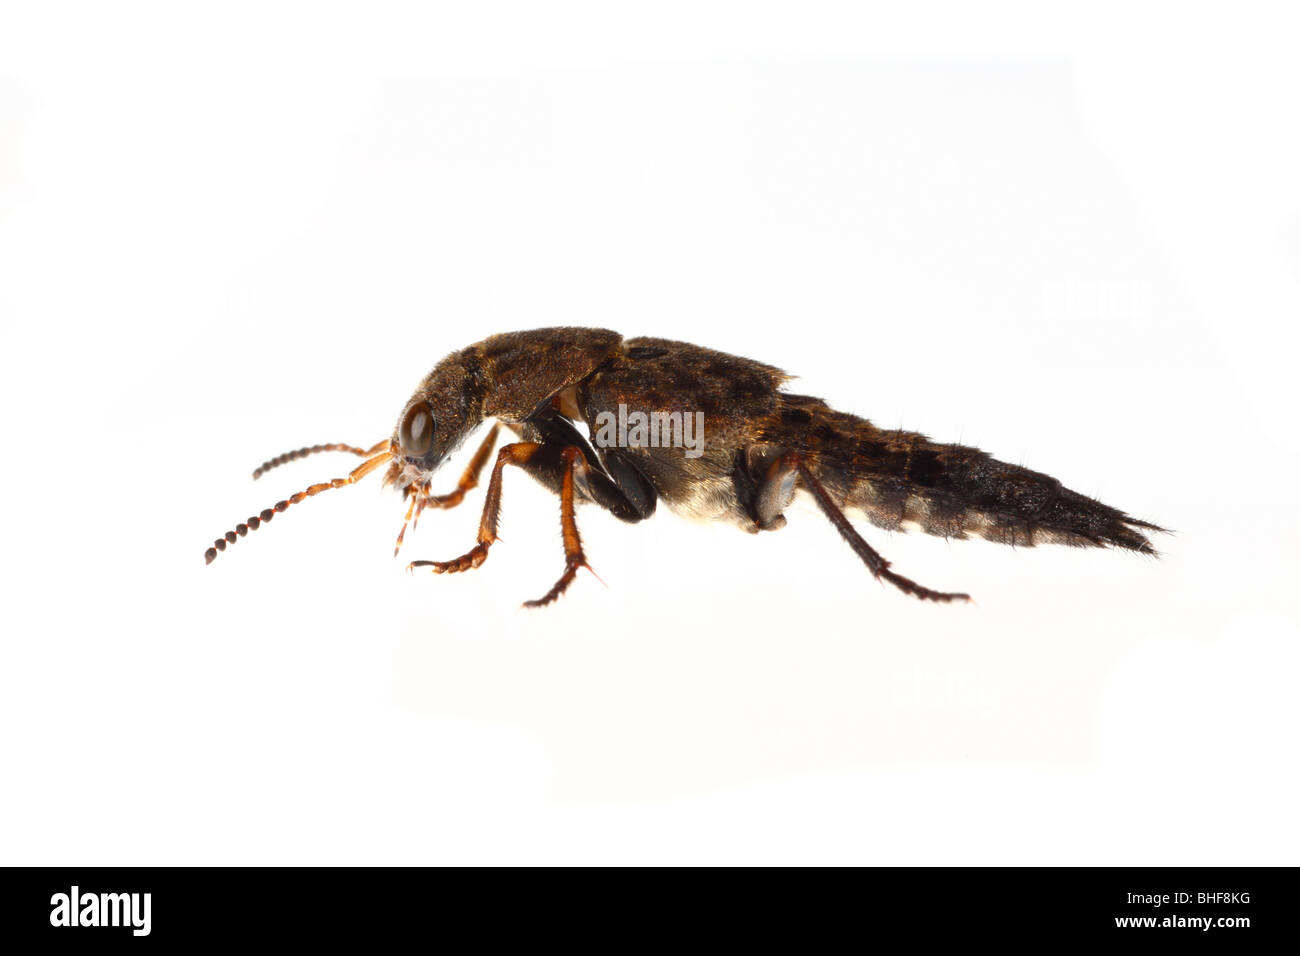 Rove Beetle (Creophilus maxillosus). Live insect photographed against a white background on a portable studio. - Stock Image